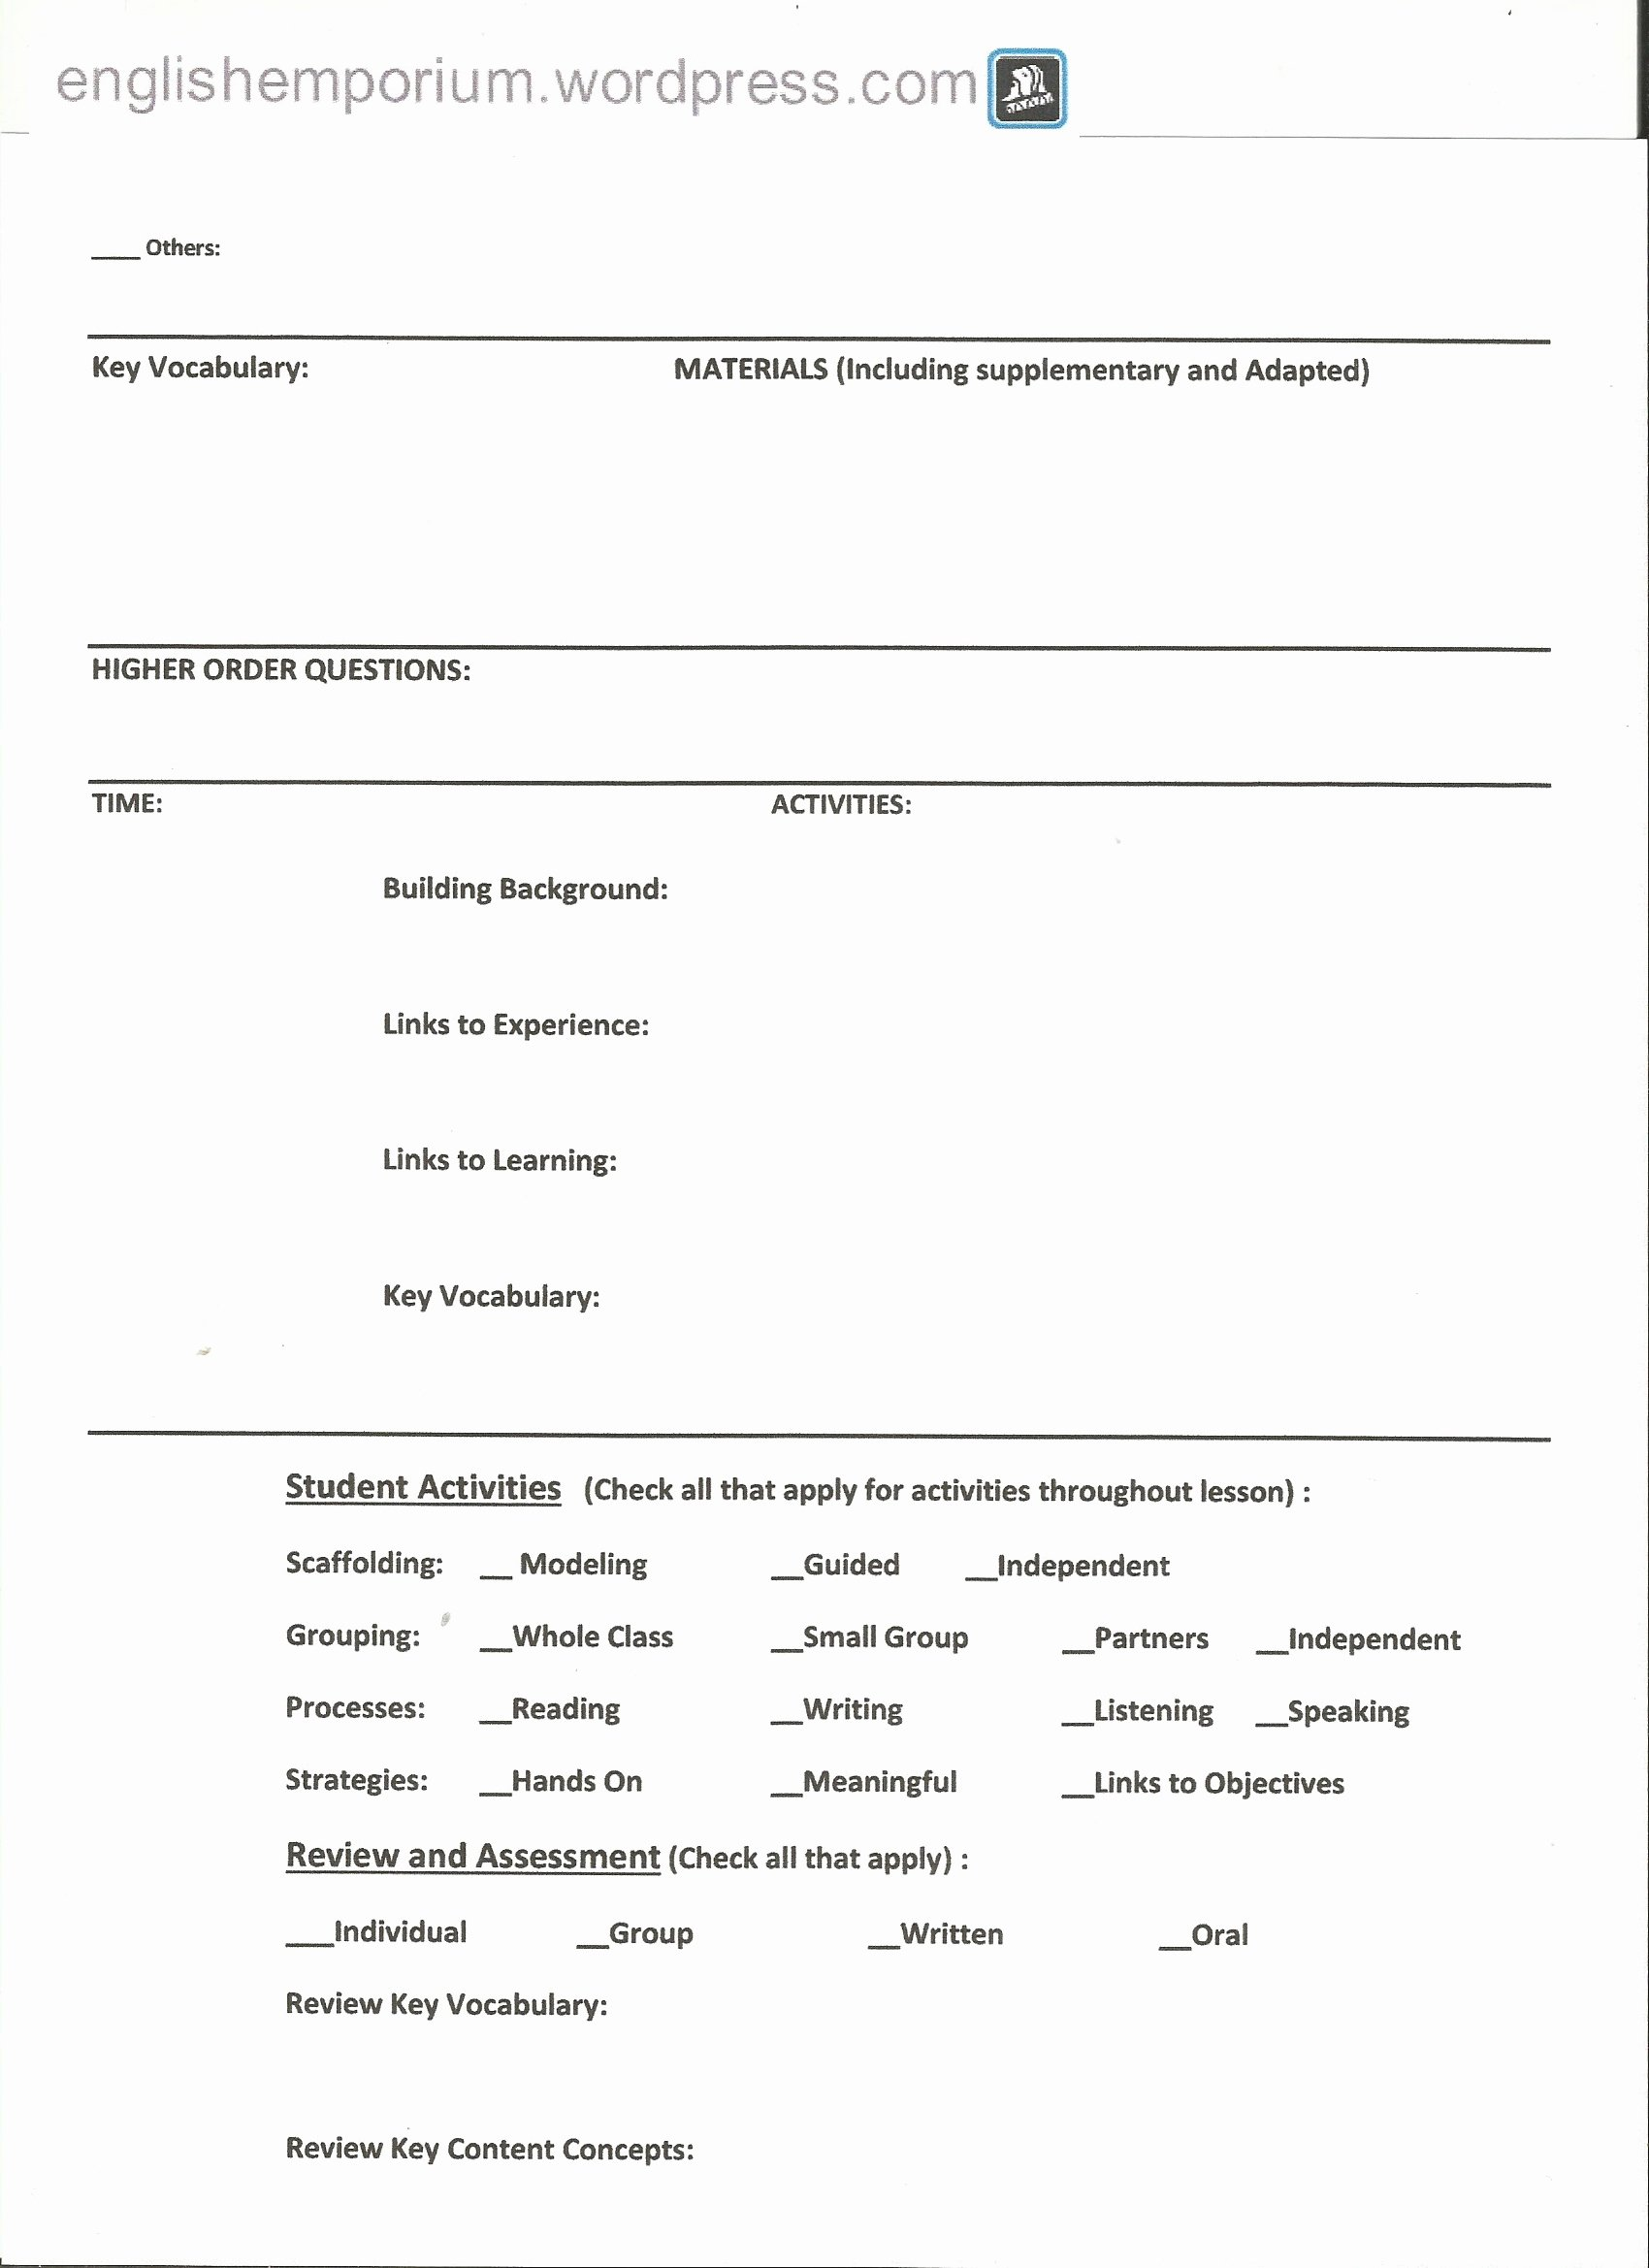 Siop Lesson Plan Template Fresh Siop Lesson Plan Checklist for 7th Grade Geography Page2